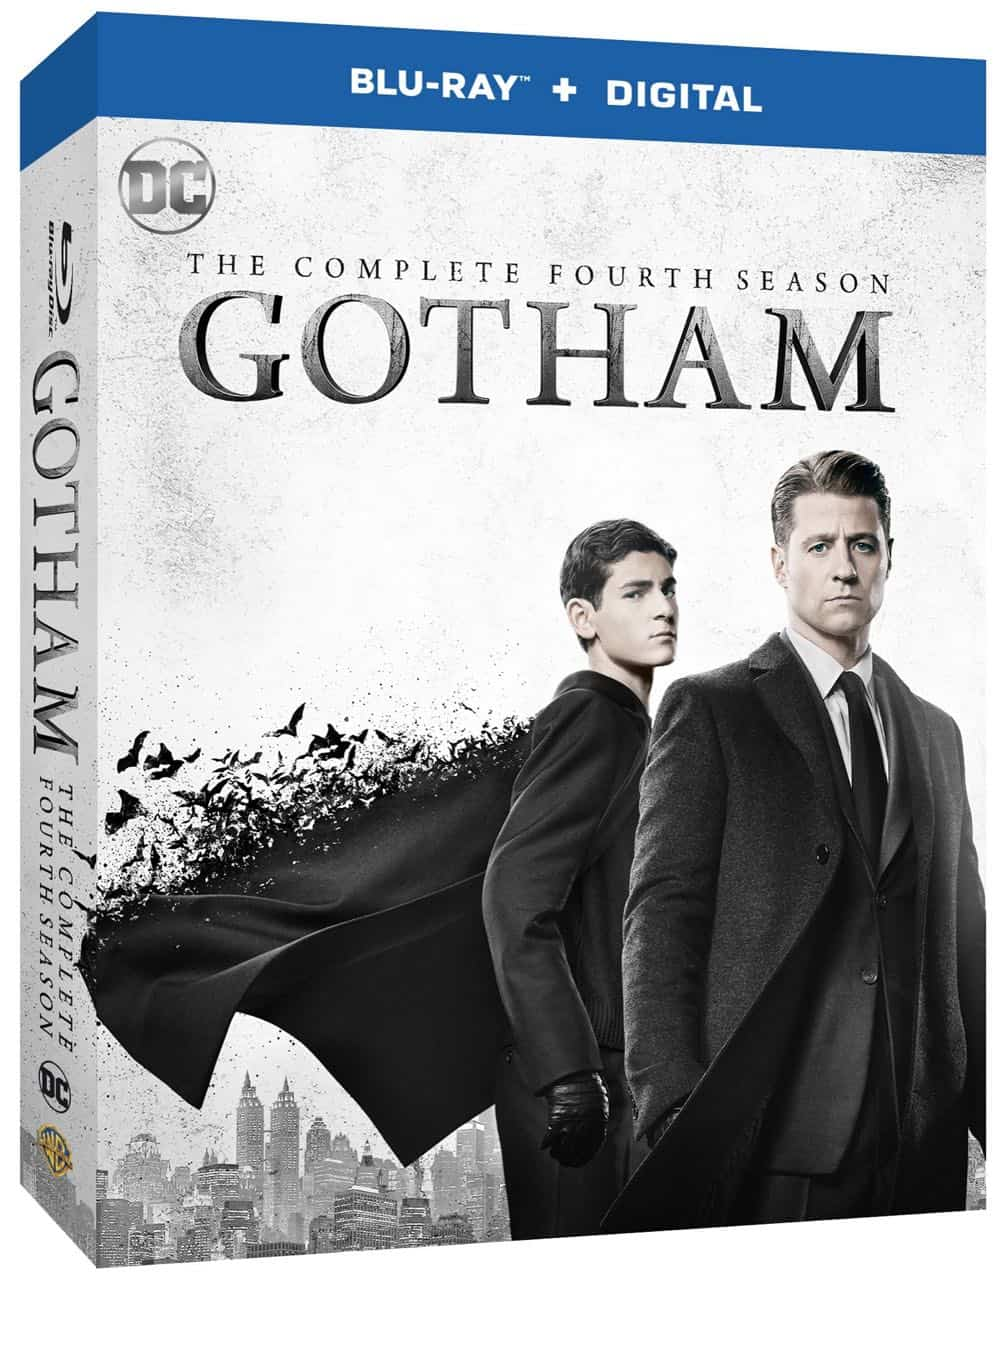 Gotham-Season-4-Bluray-Digital-2